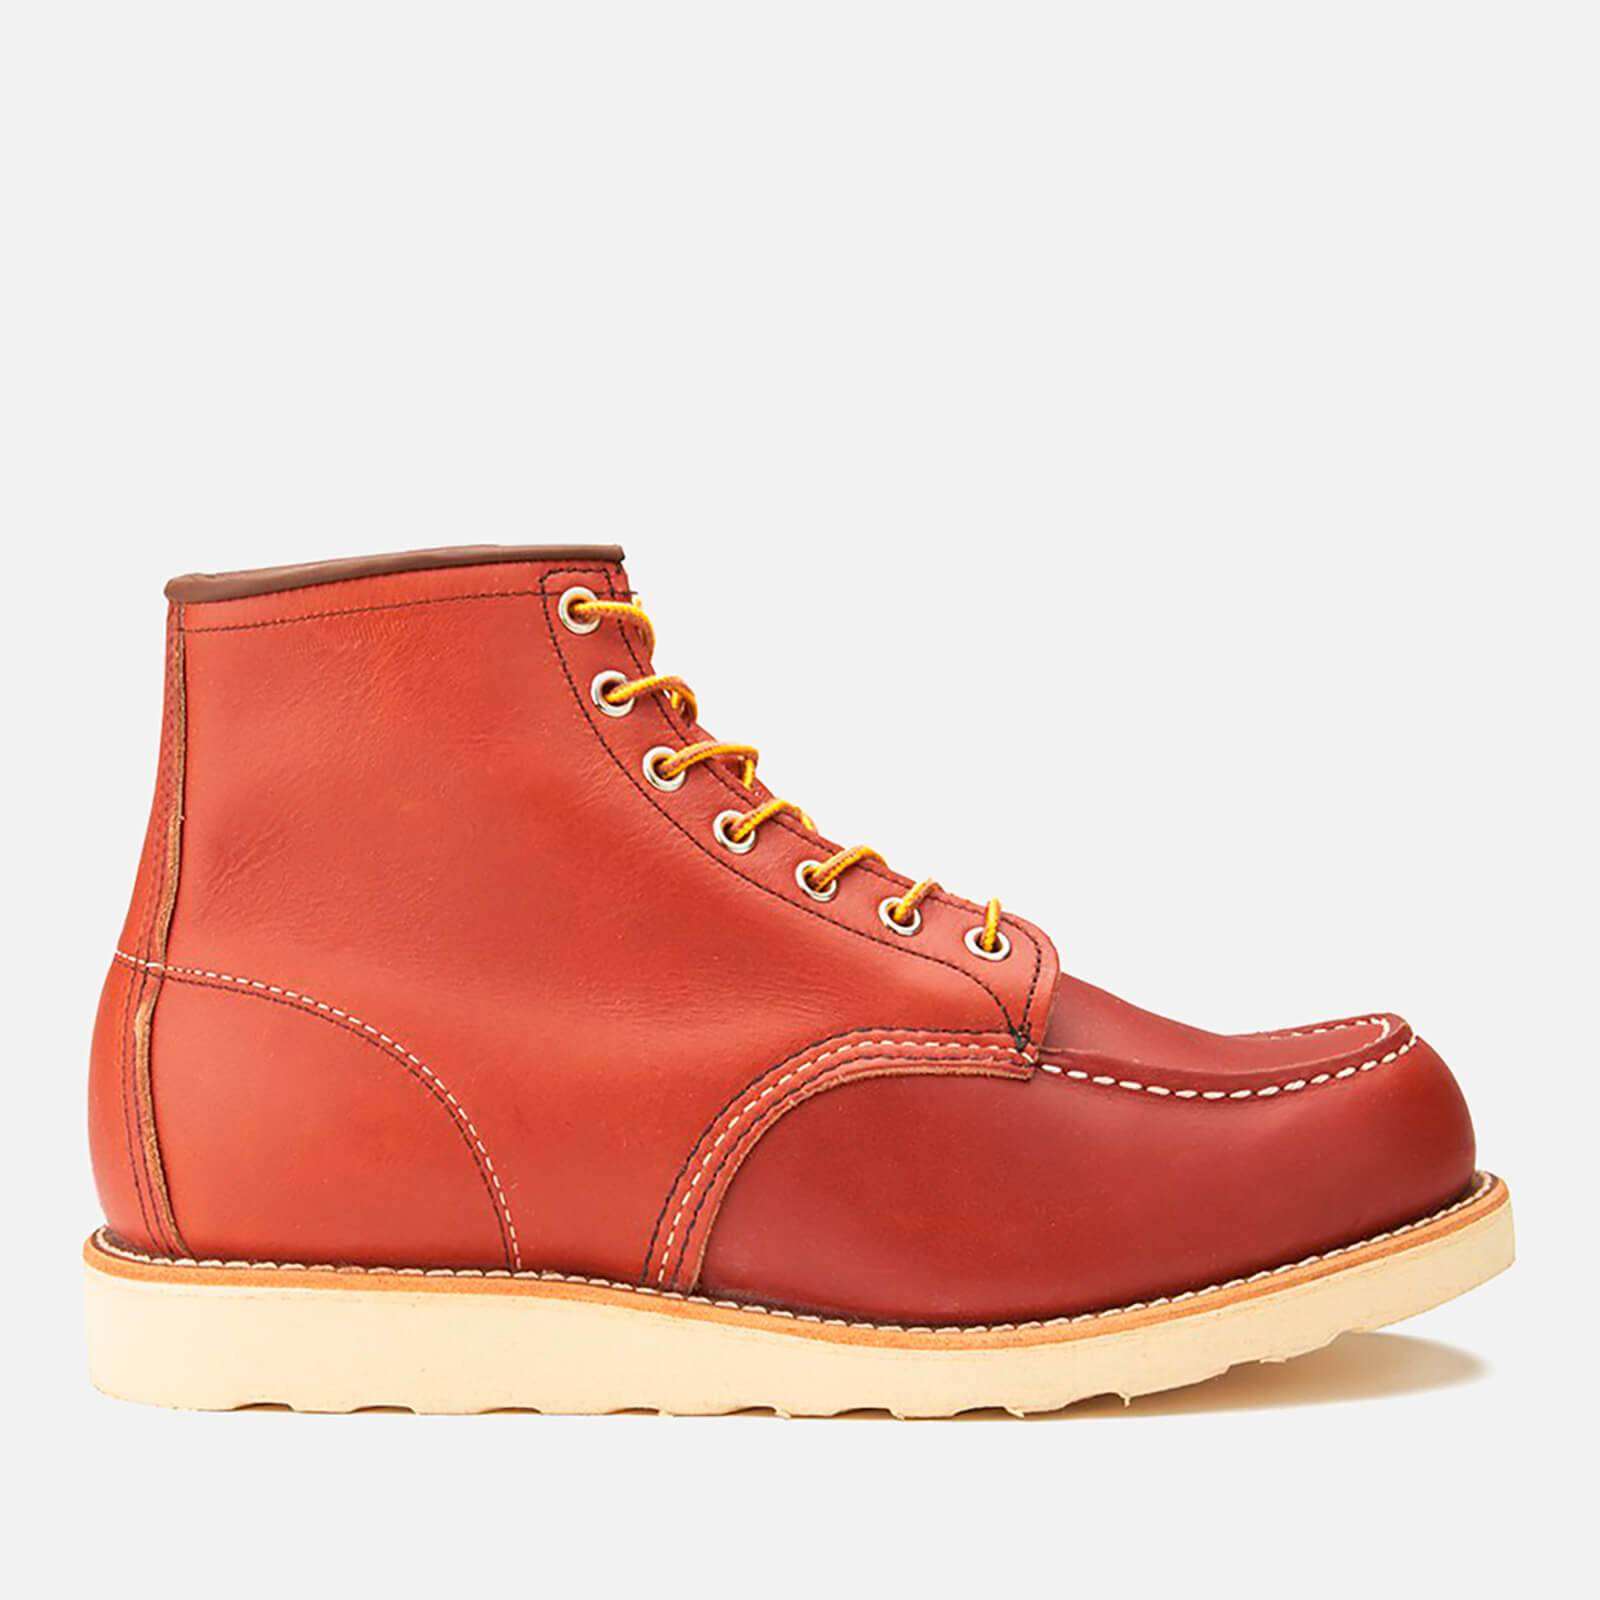 Red Wing Men's 6 Inch Moc Toe Leather Lace Up Boots - Oro Russet Portage - UK 9/US 10